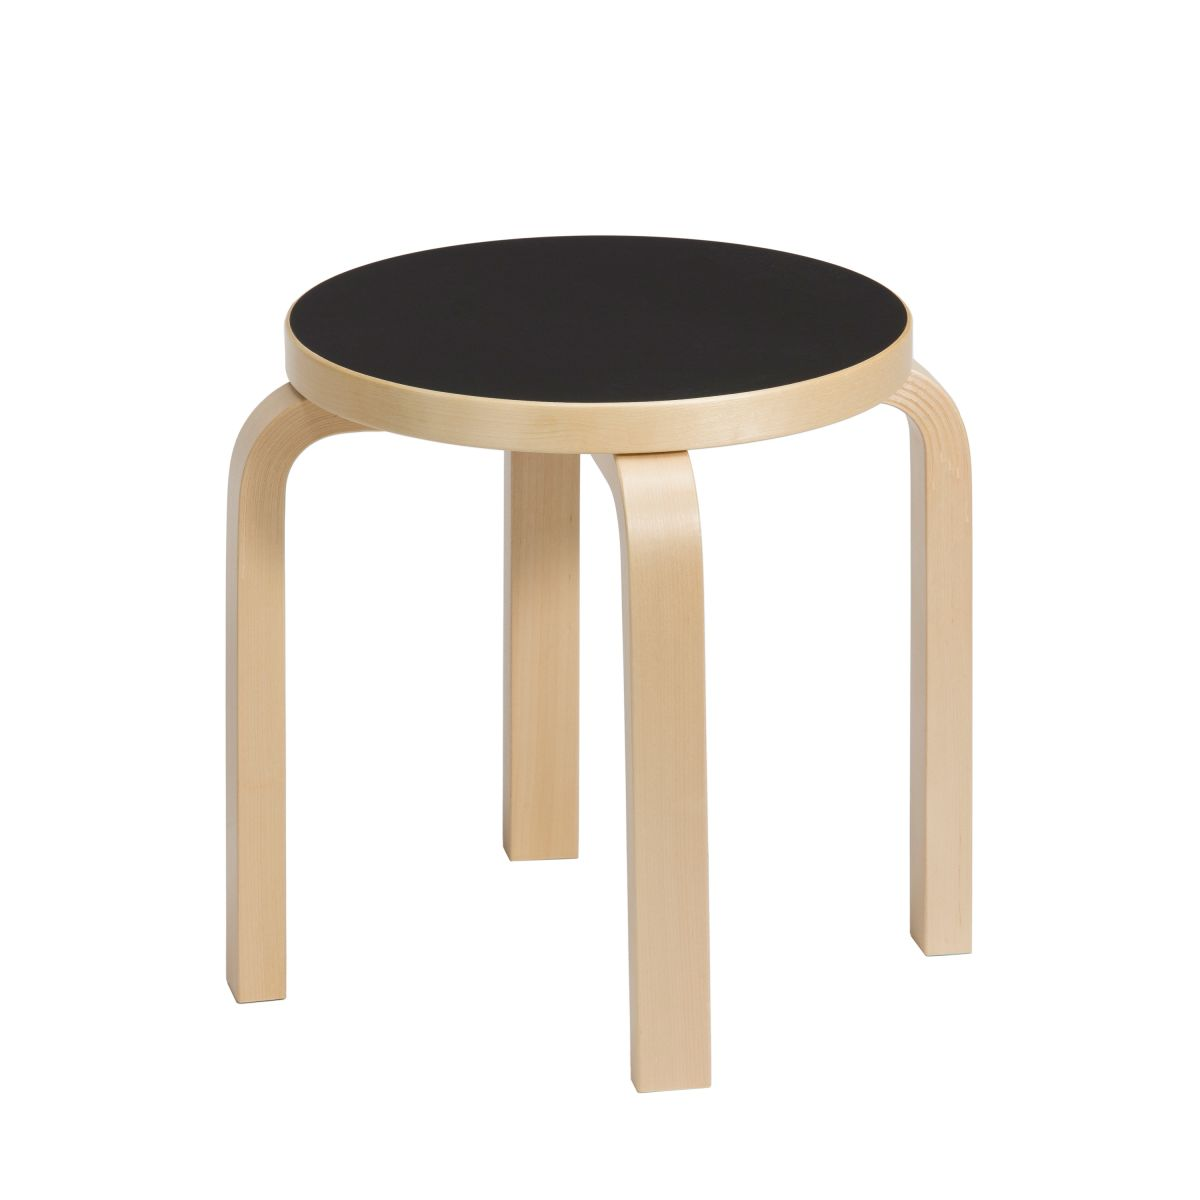 Childrens-Stool-Ne60-Black-Linoleum